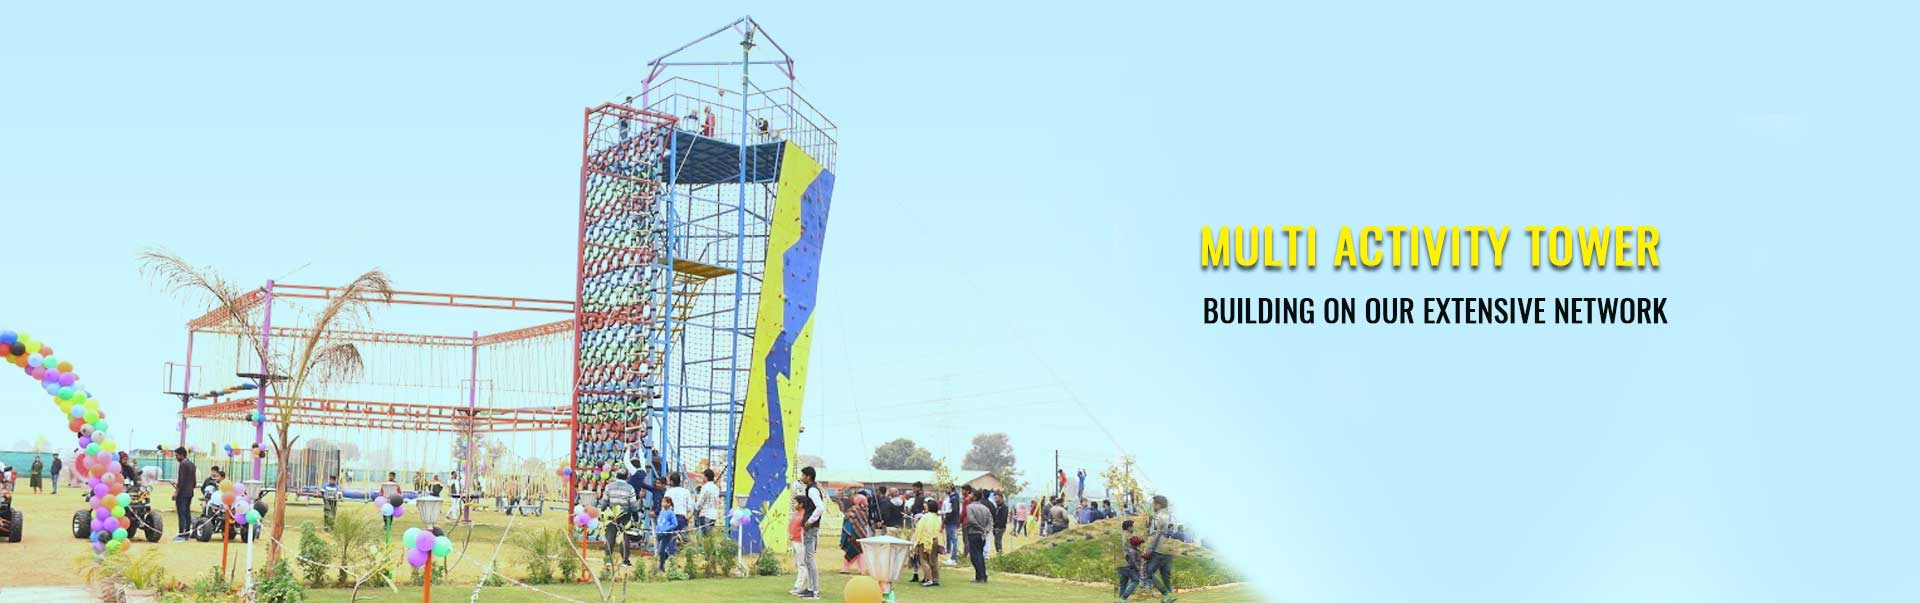 Multi Activity Tower Manufacturers in Bhilwara